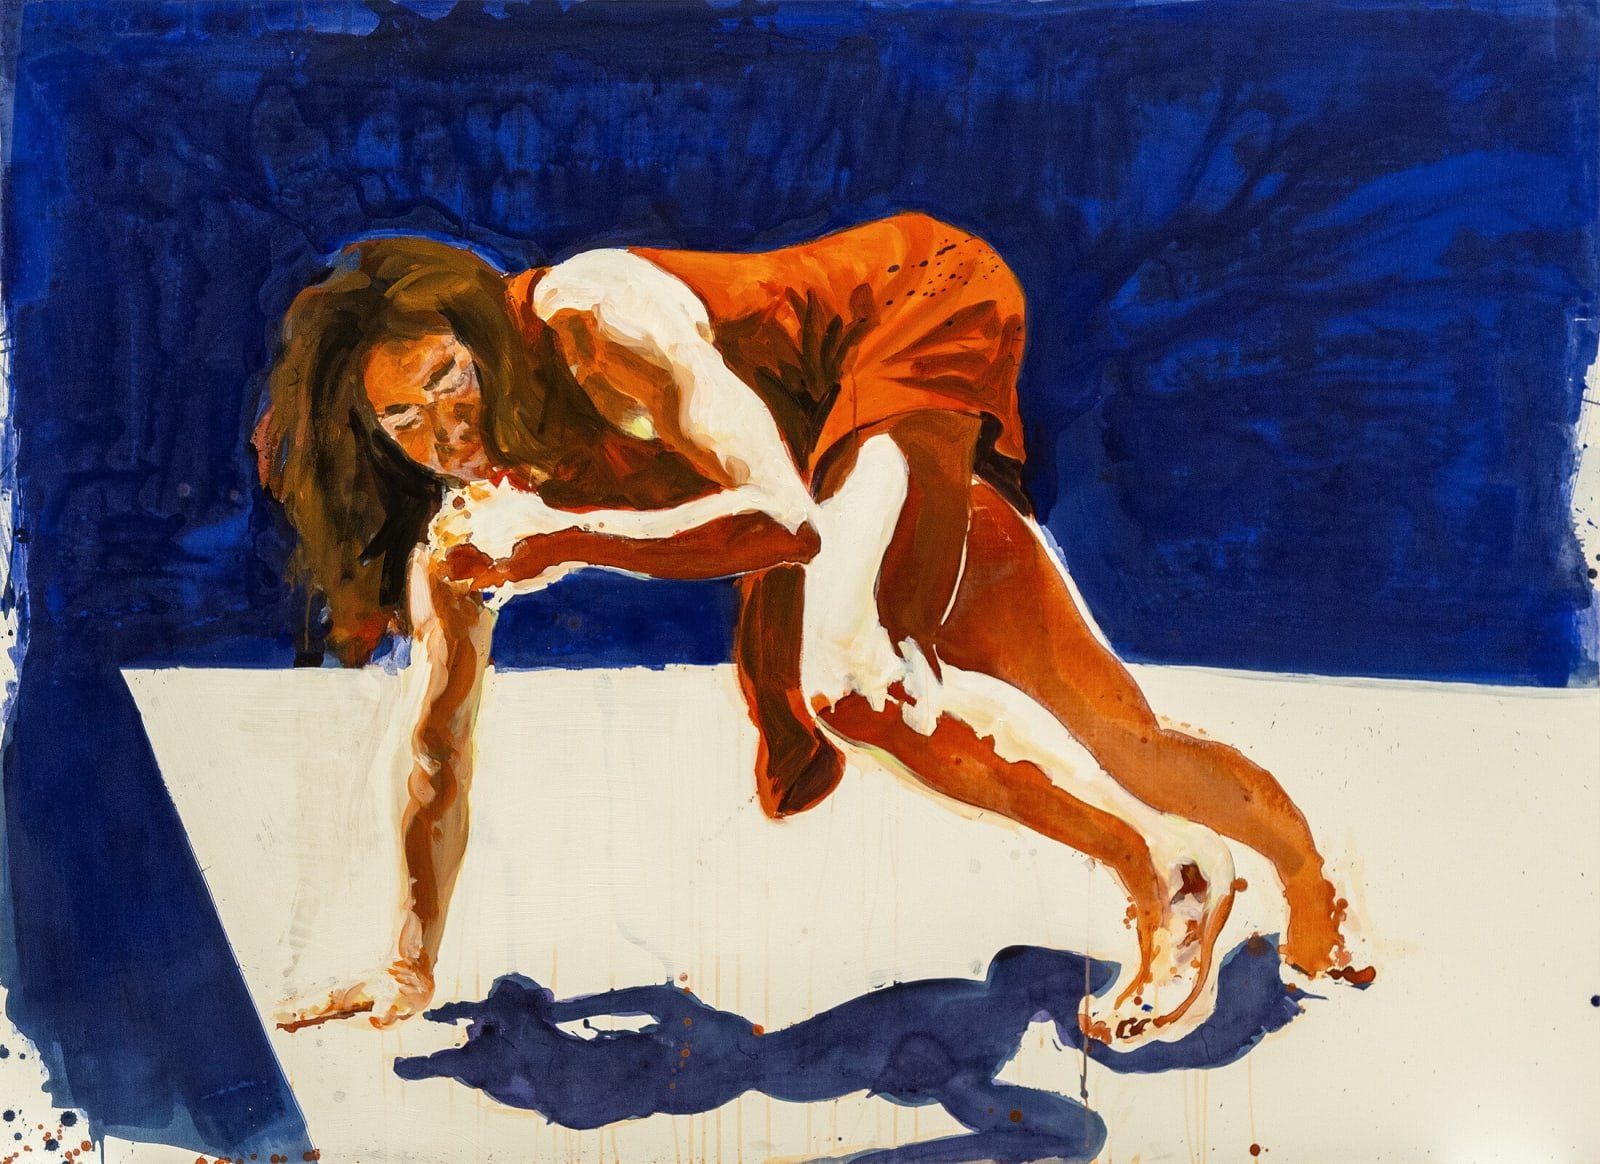 Eric Fischl Shadow Puppet 2021 acrylic on linen 54 x 74 inches 137.2 x 188 cm More Info